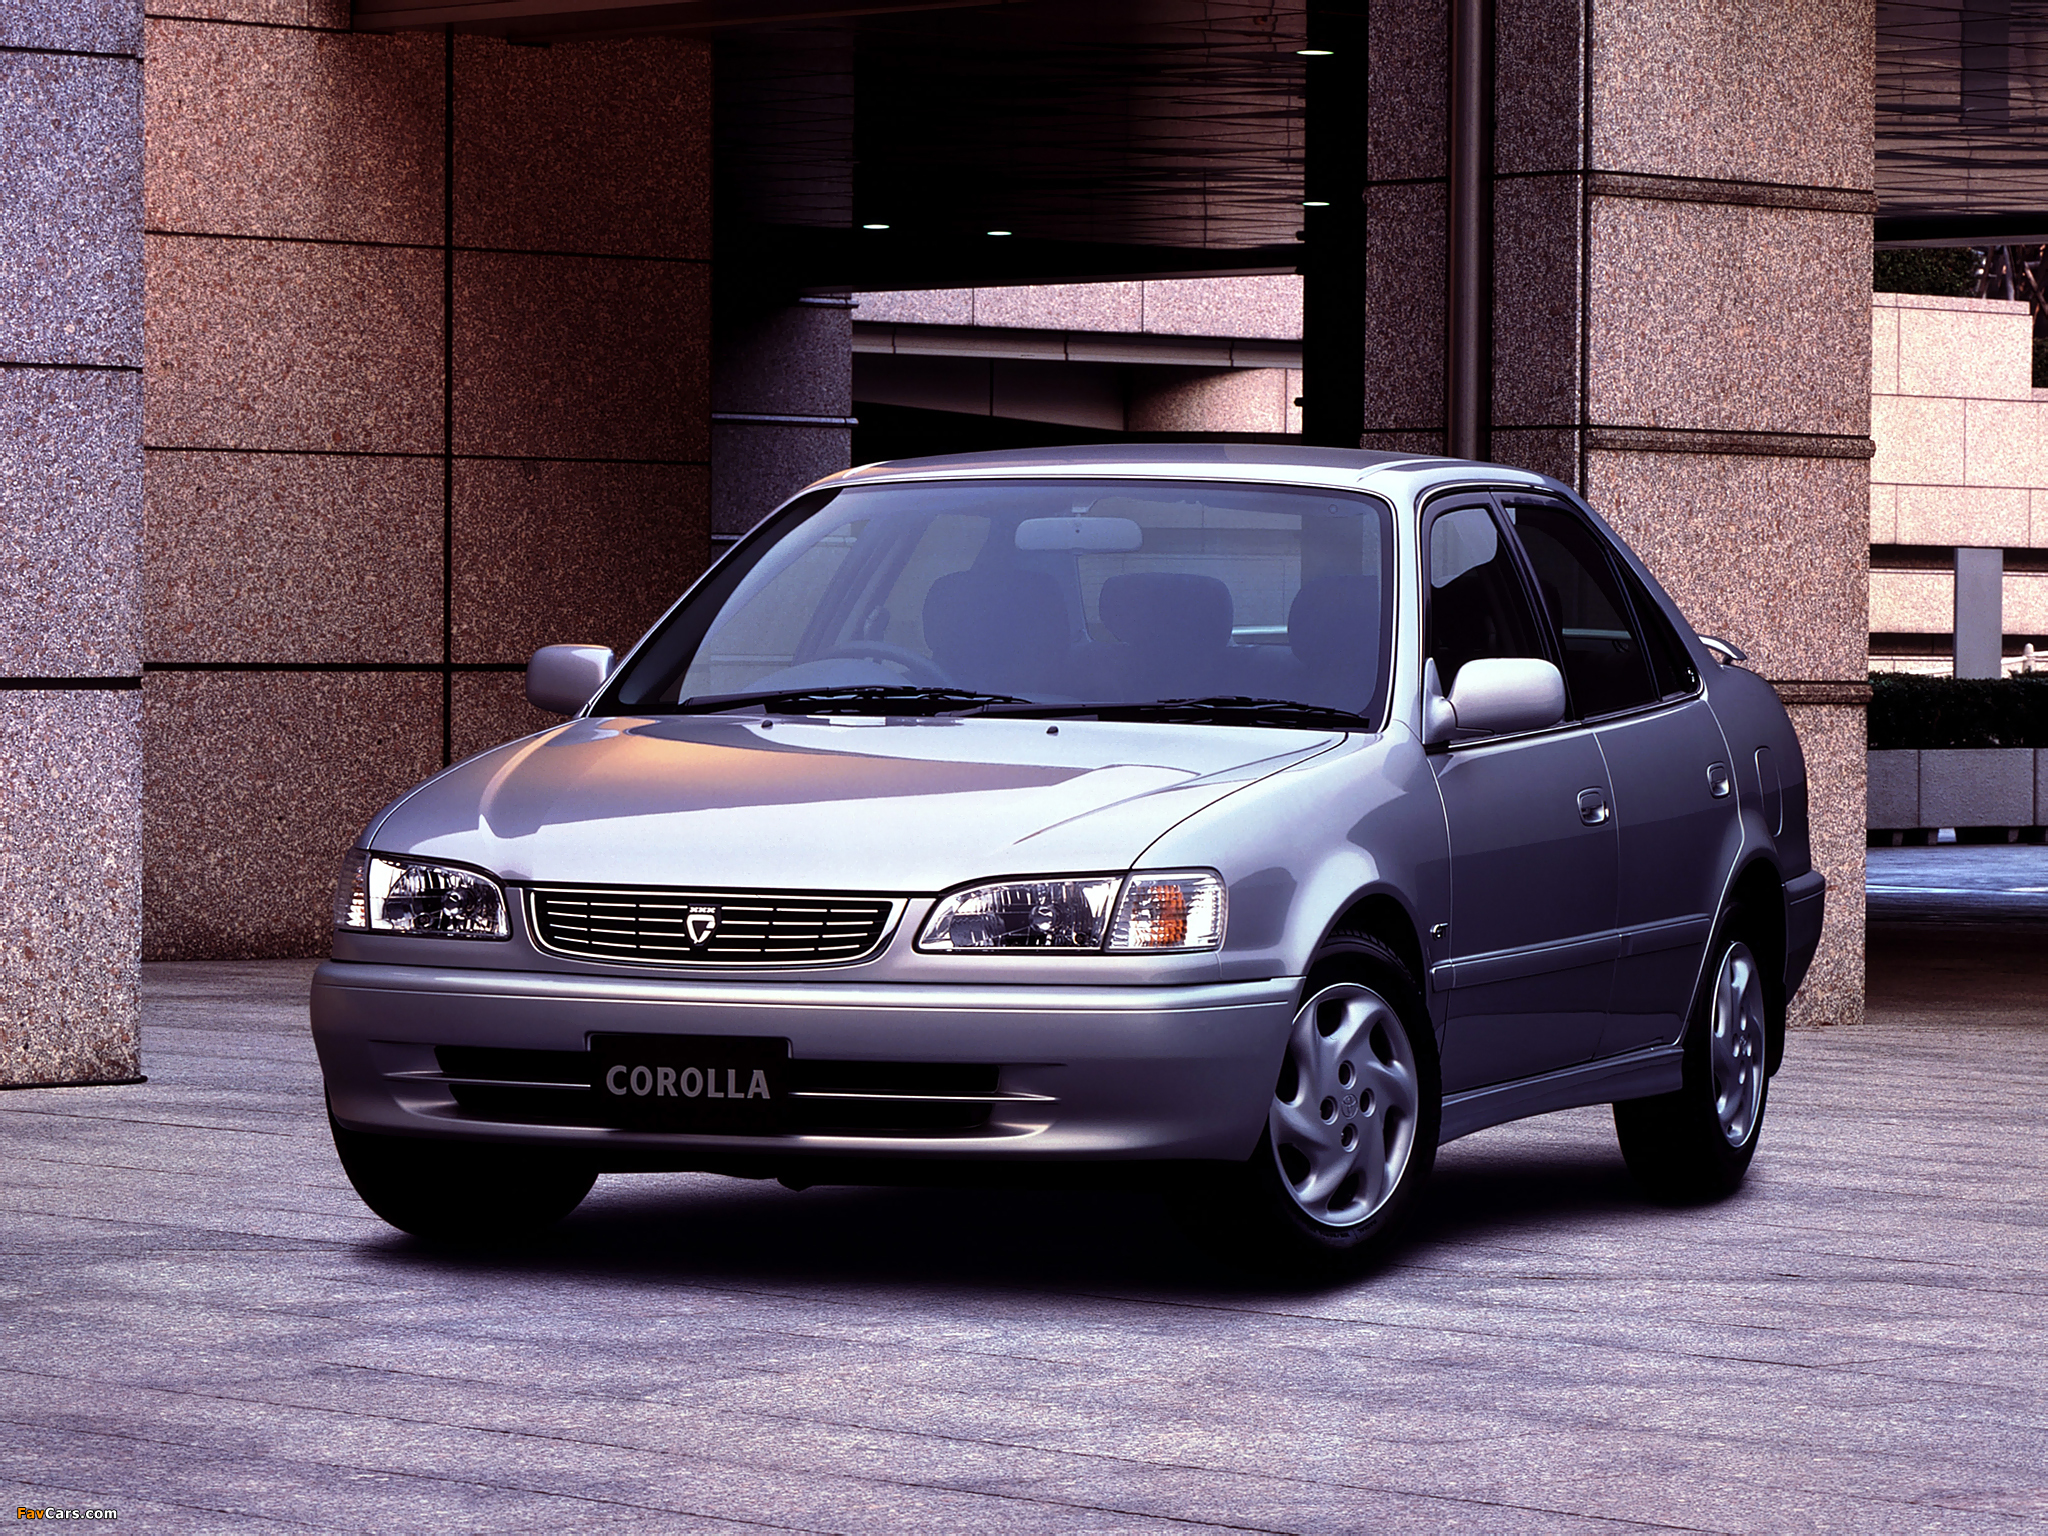 Toyota Corolla 1 6 Gt Ae111 1997 2000 Images 2048x1536